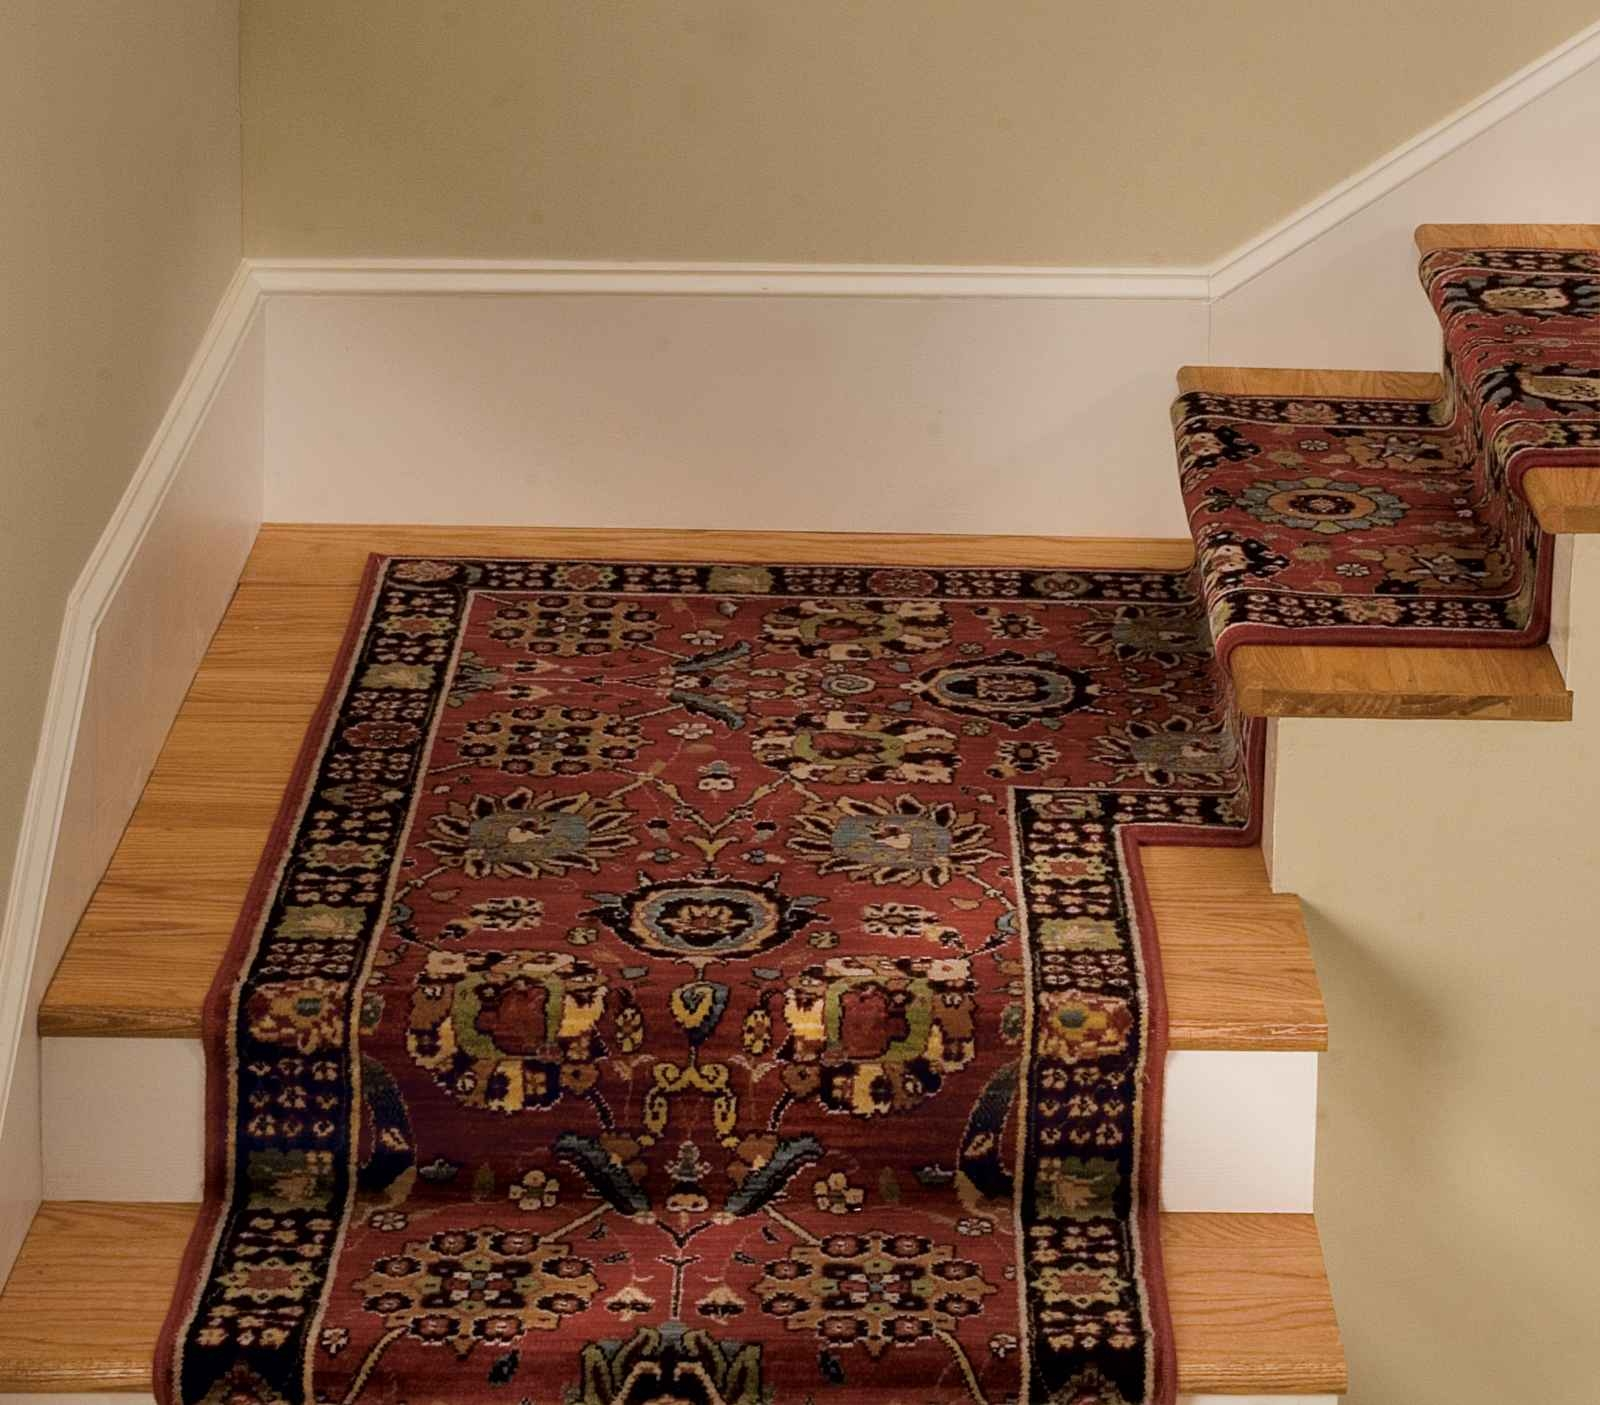 Carpet Stair Runner For Home New Home Pinterest Stair Treads Inside Stair Treads And Matching Rugs (View 3 of 15)